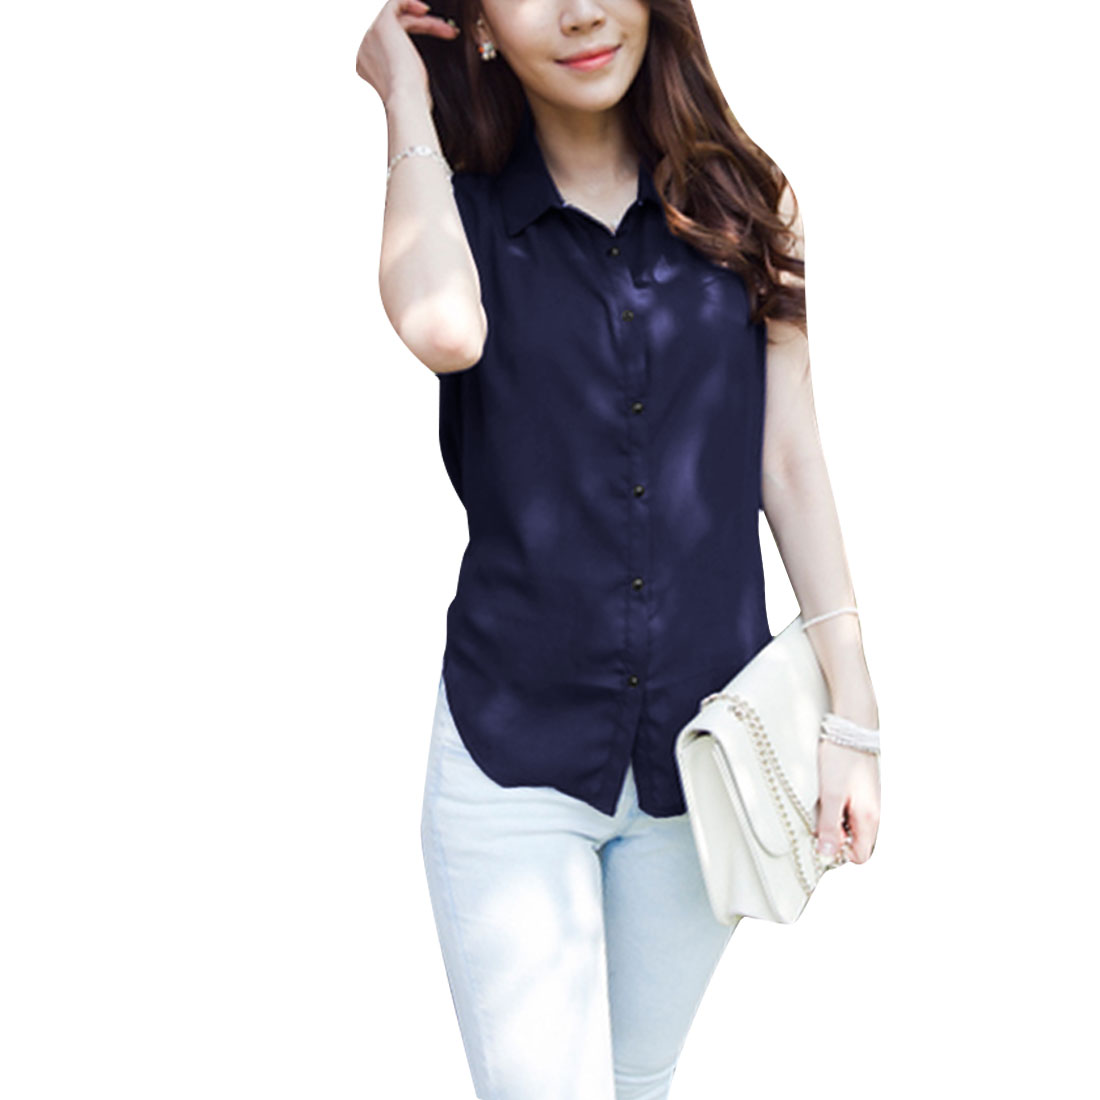 Women Point Collar Sleeveless Strap Back Shirt Navy Blue S